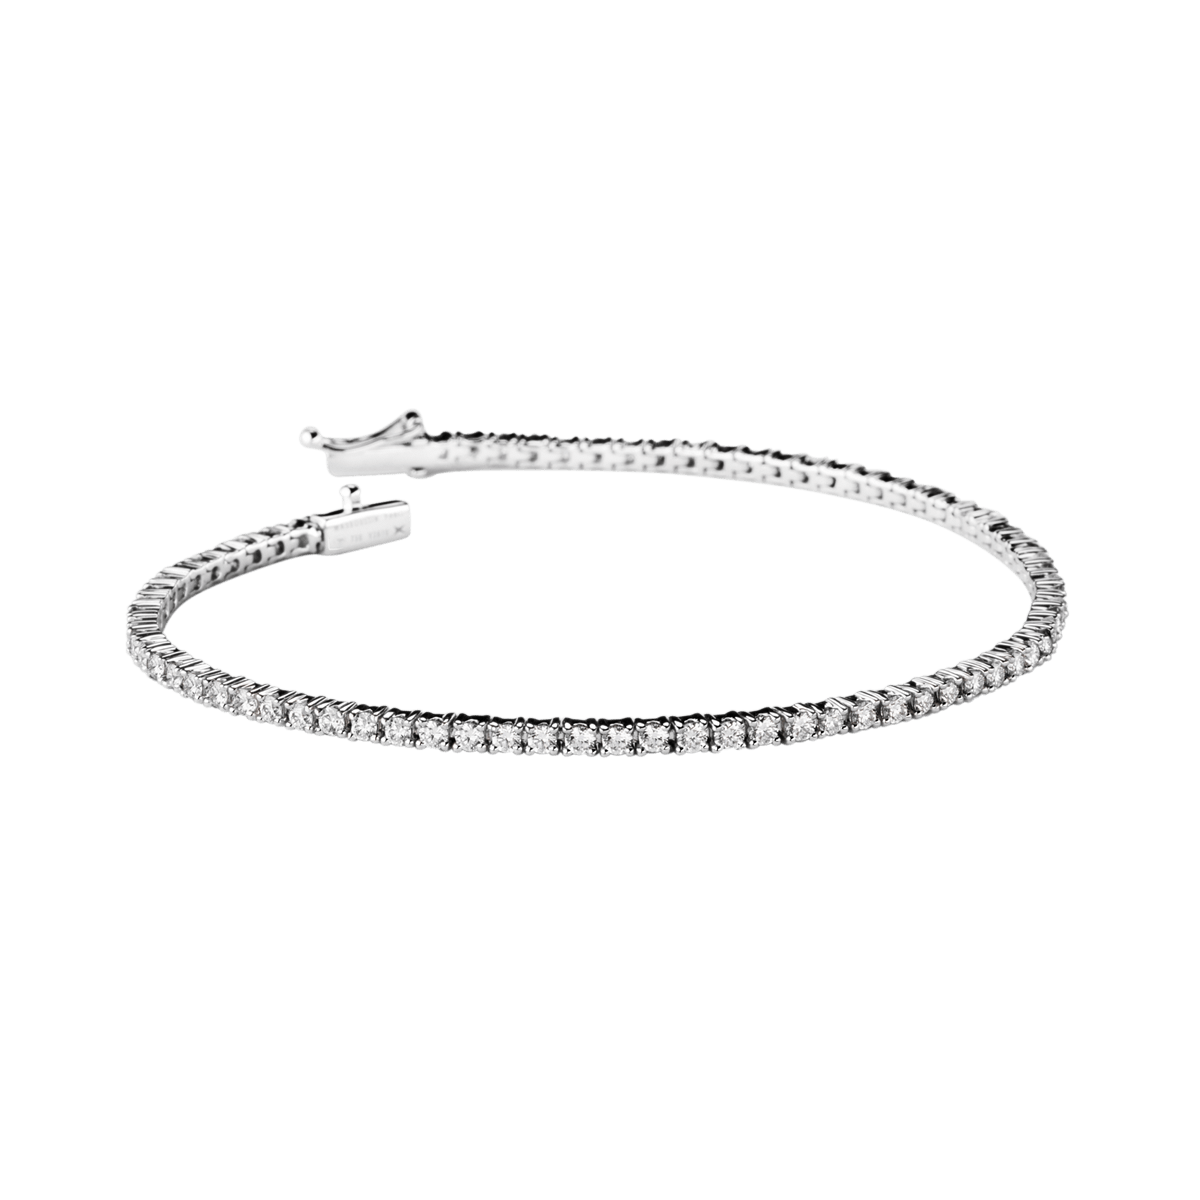 Bracelet Riviere d\u0027Amour, or blanc et diamants